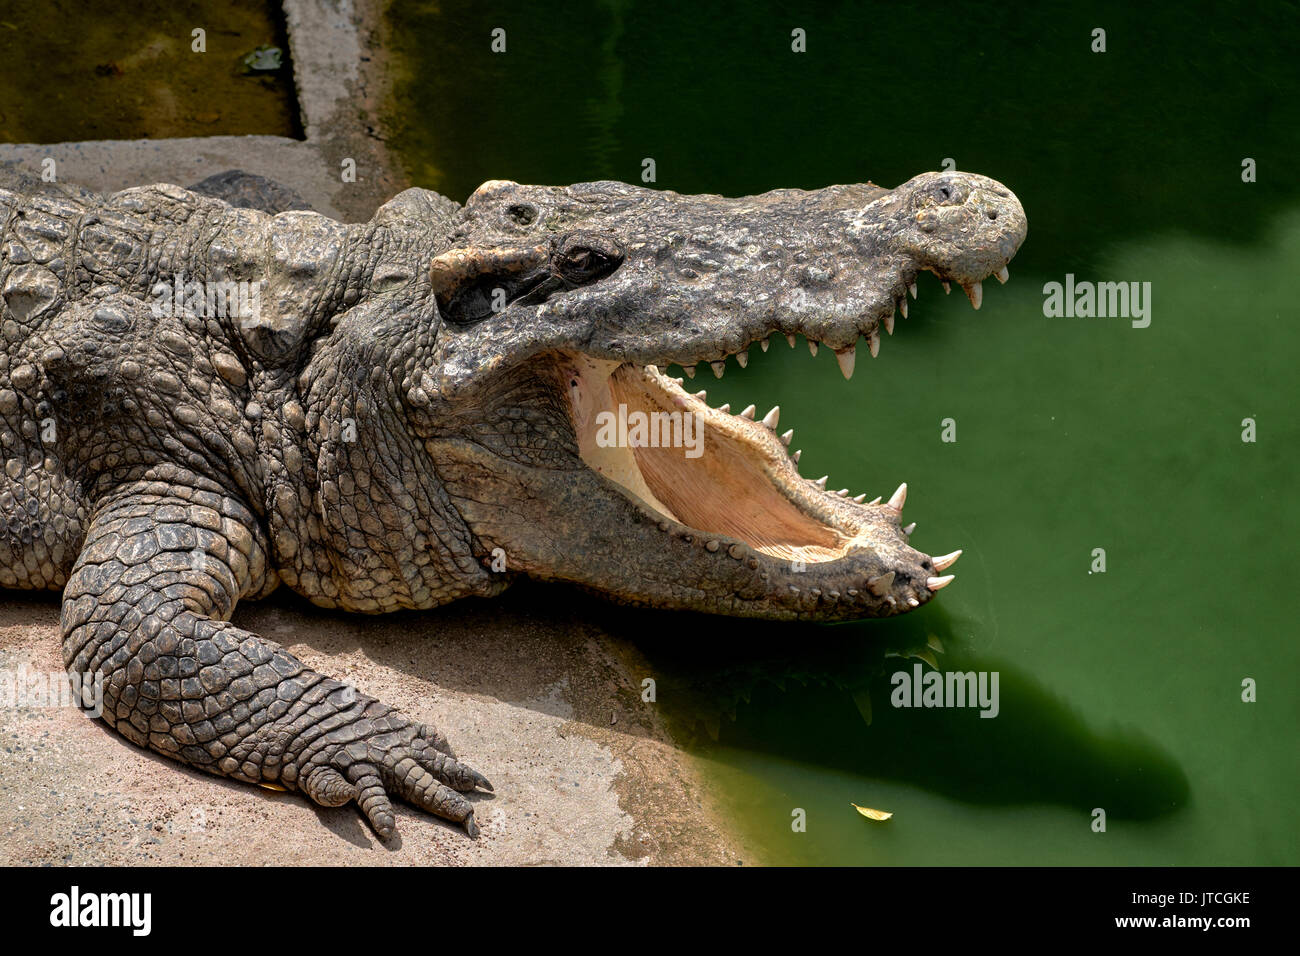 Huge crocodile open mouth